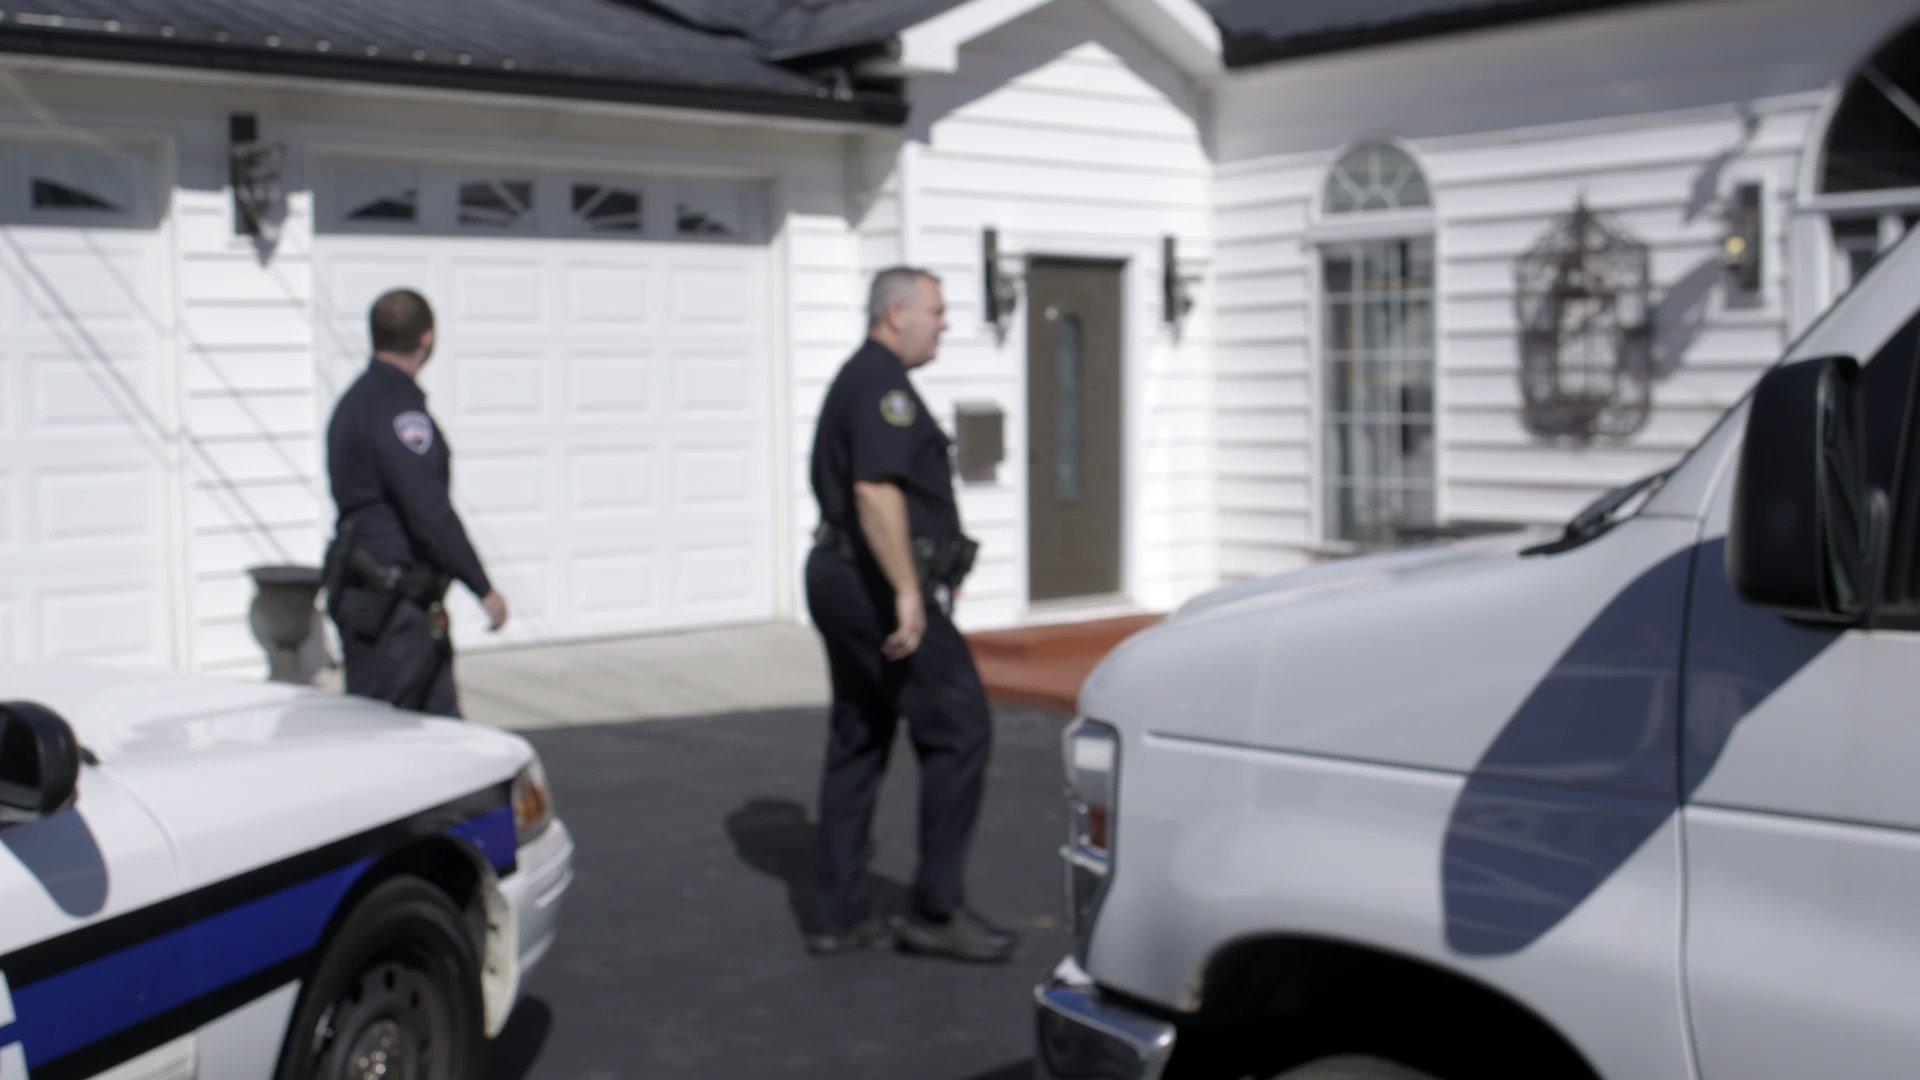 Snapped: Police Find Body Decomposing in Victim's Garage (Season 24, Episode 22)